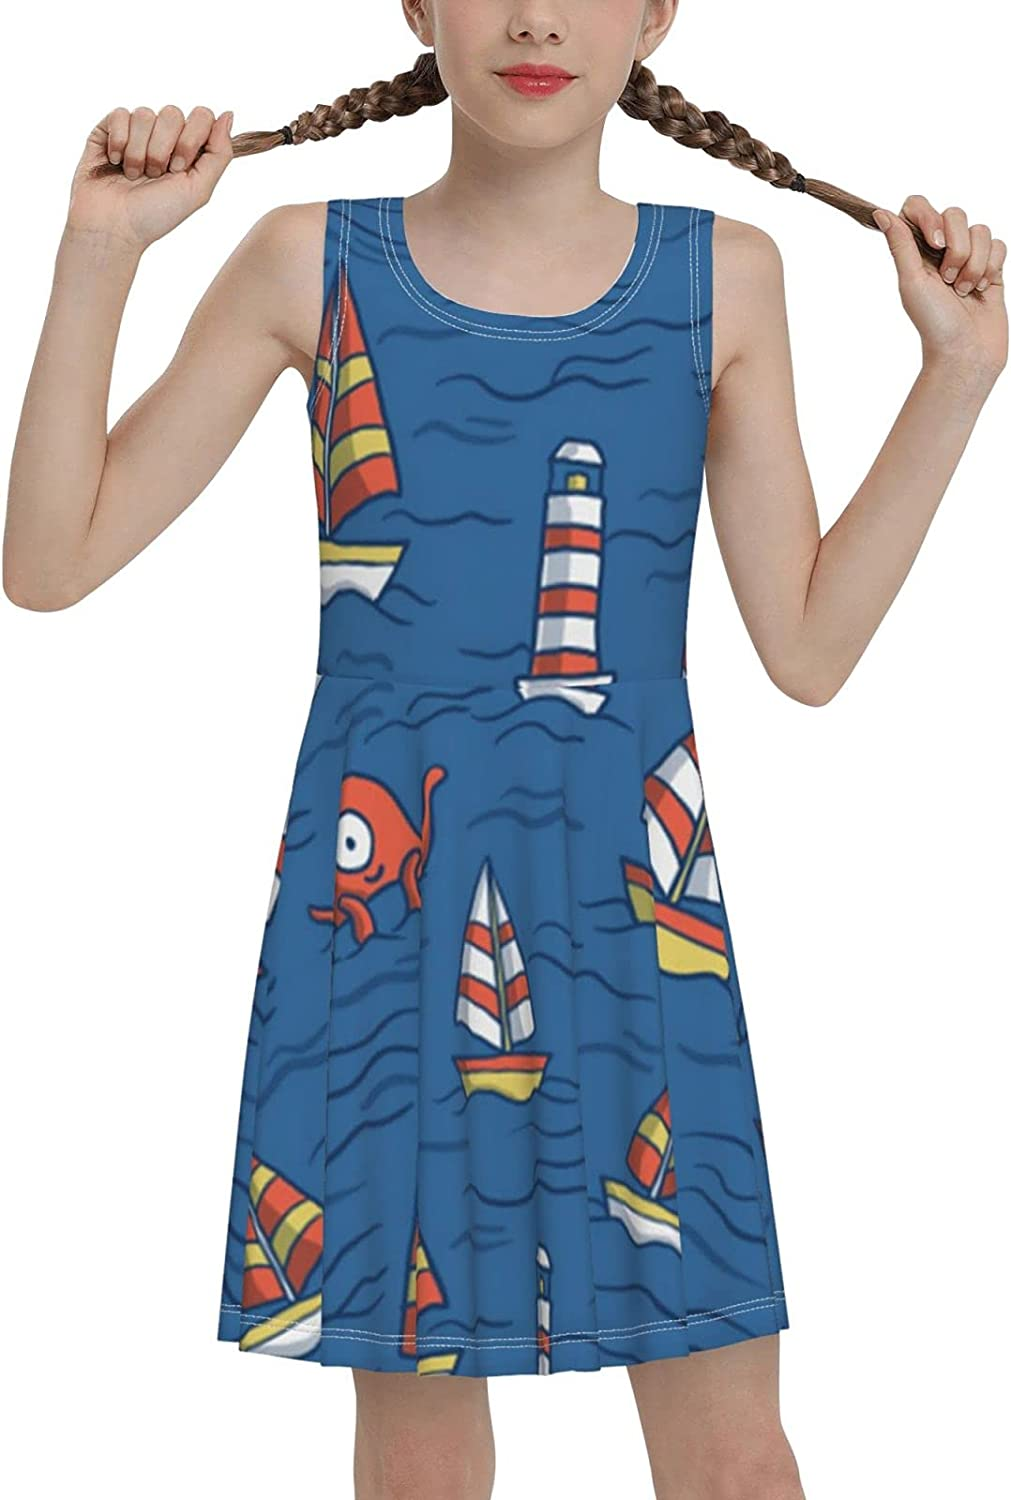 SDGhgHJG Ships and Lighthouse Sleeveless Dress for Girls Casual Printed Pleated Skir